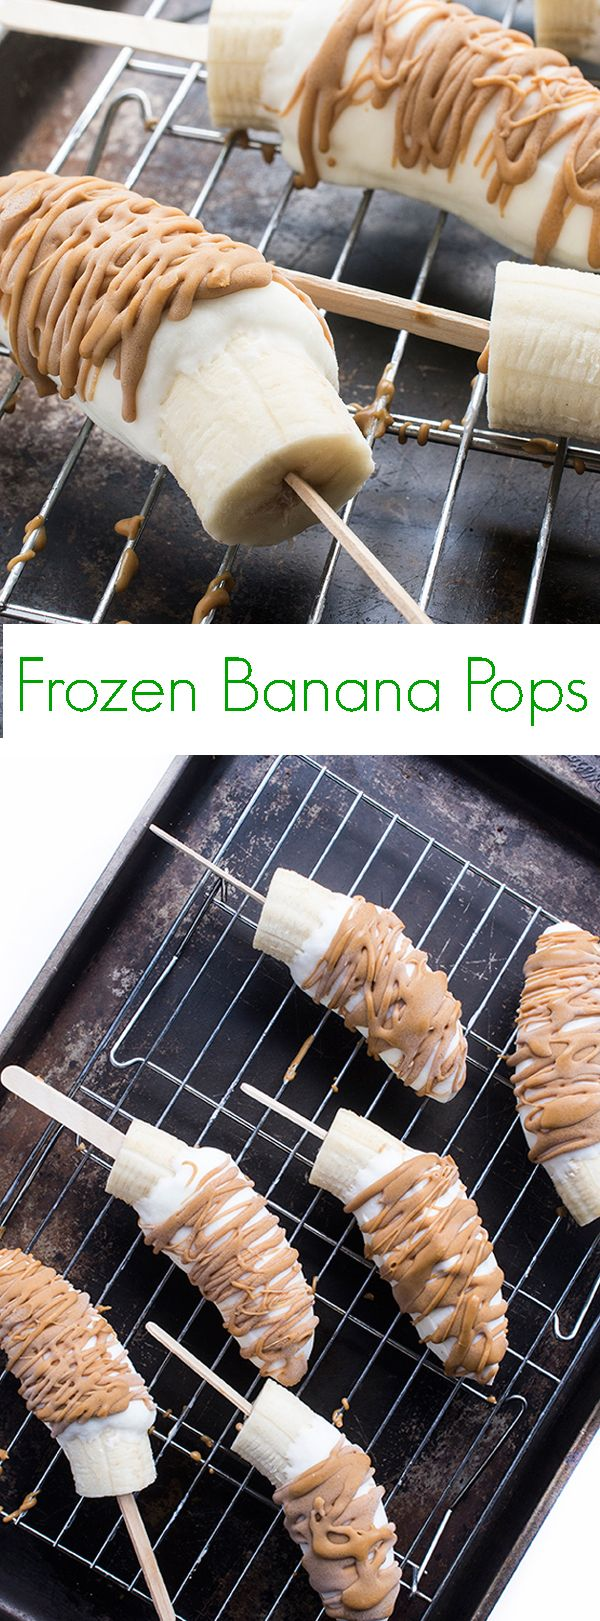 Frozen Banana Pops - A healthy and easy dessert recipe that's perfect for any occasion!